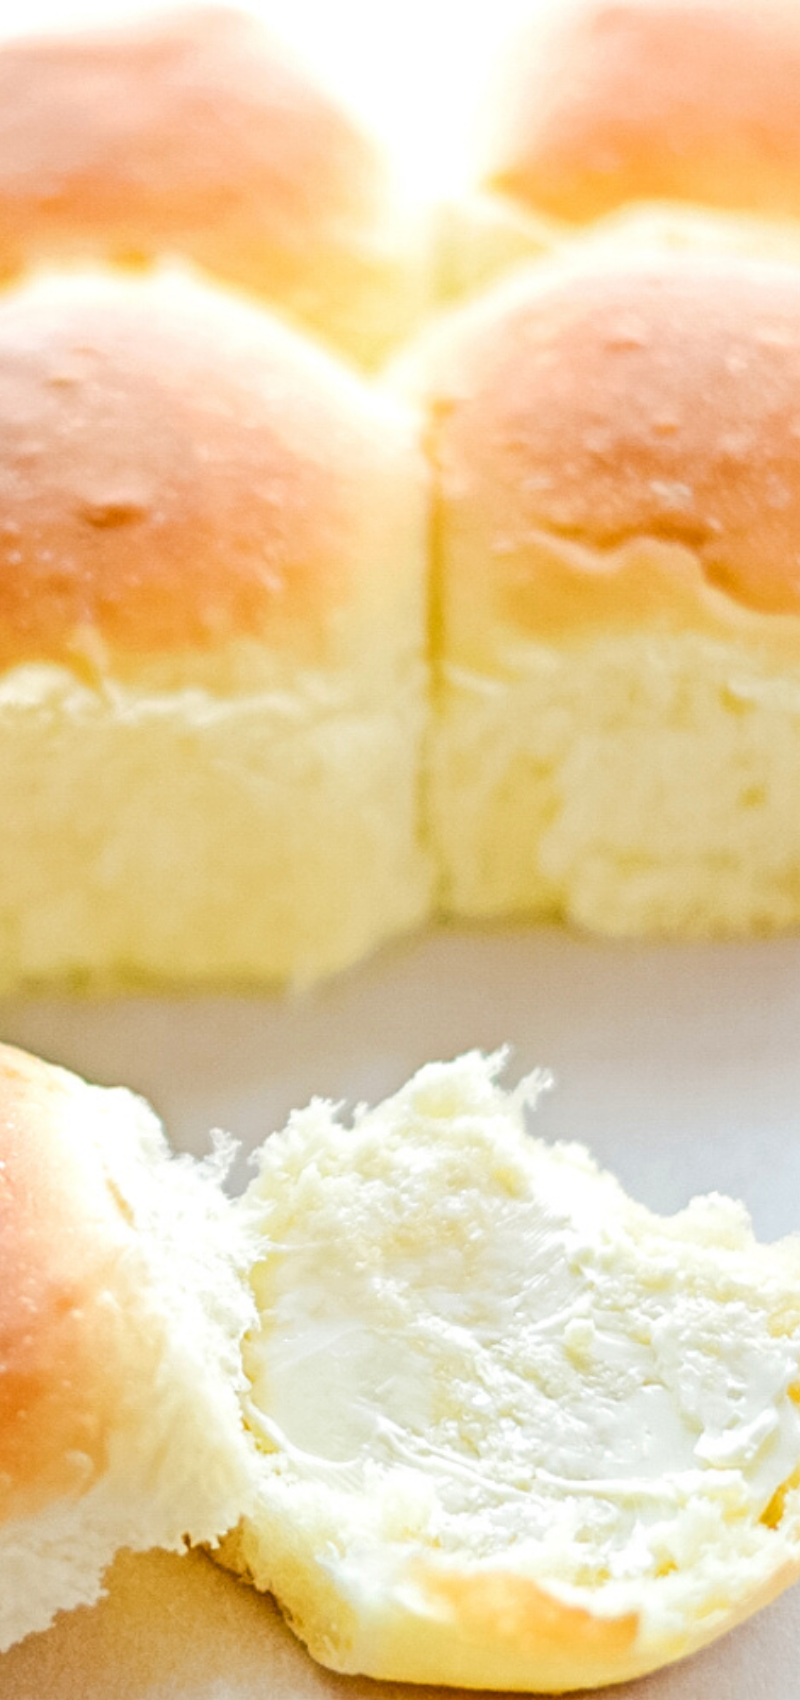 Homemade Dinner Rolls - Can't find fresh bread? This ...